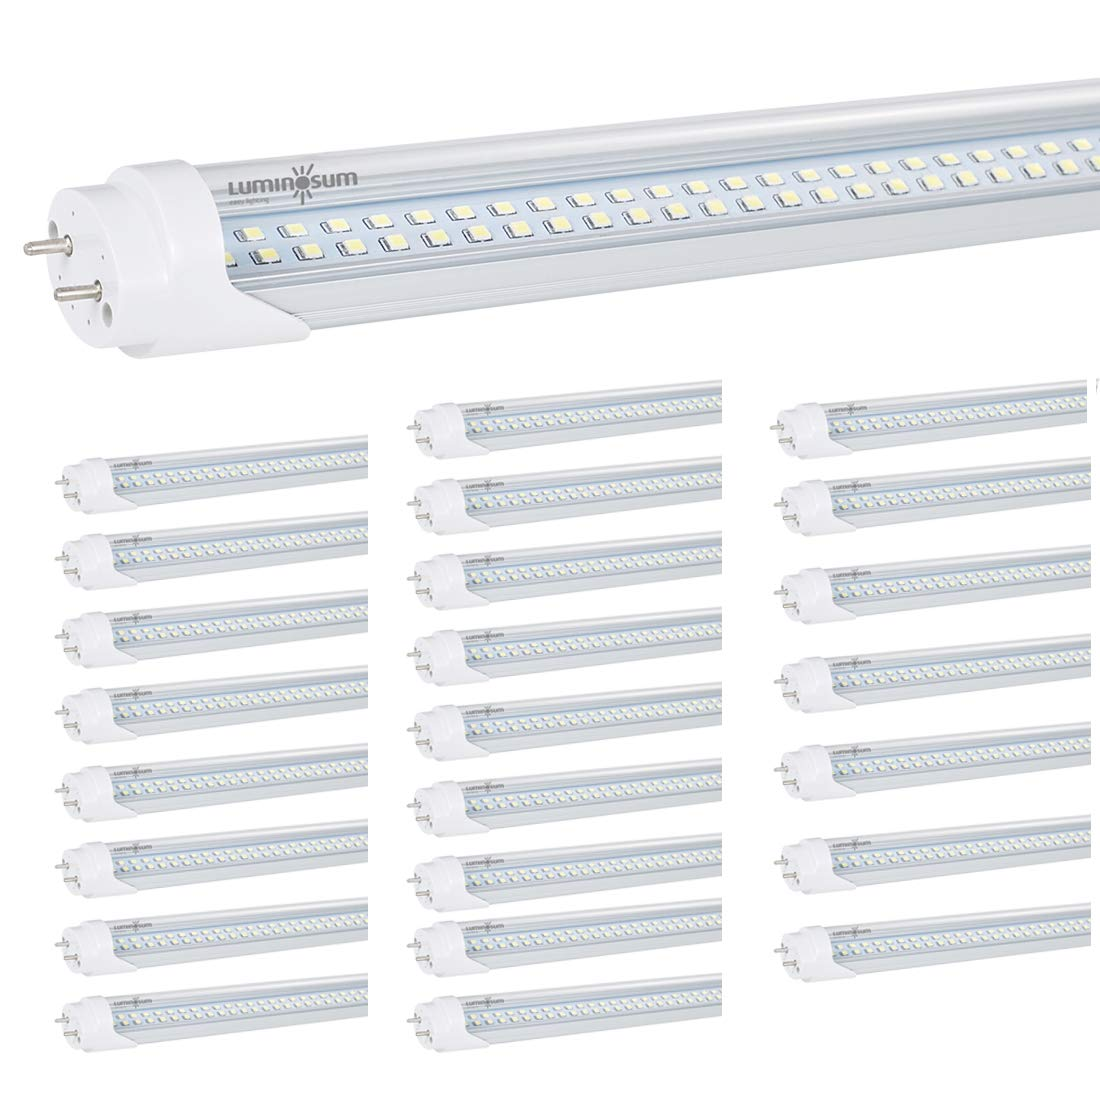 LUMINOSUM T8 T10 T12 LED Tube Lights 4 feet 28W (60W Equivalent), Dual-Ended Powered Ballat Bypass Installation, Clear Cover 6000k, ETL Listed, 25-Pack